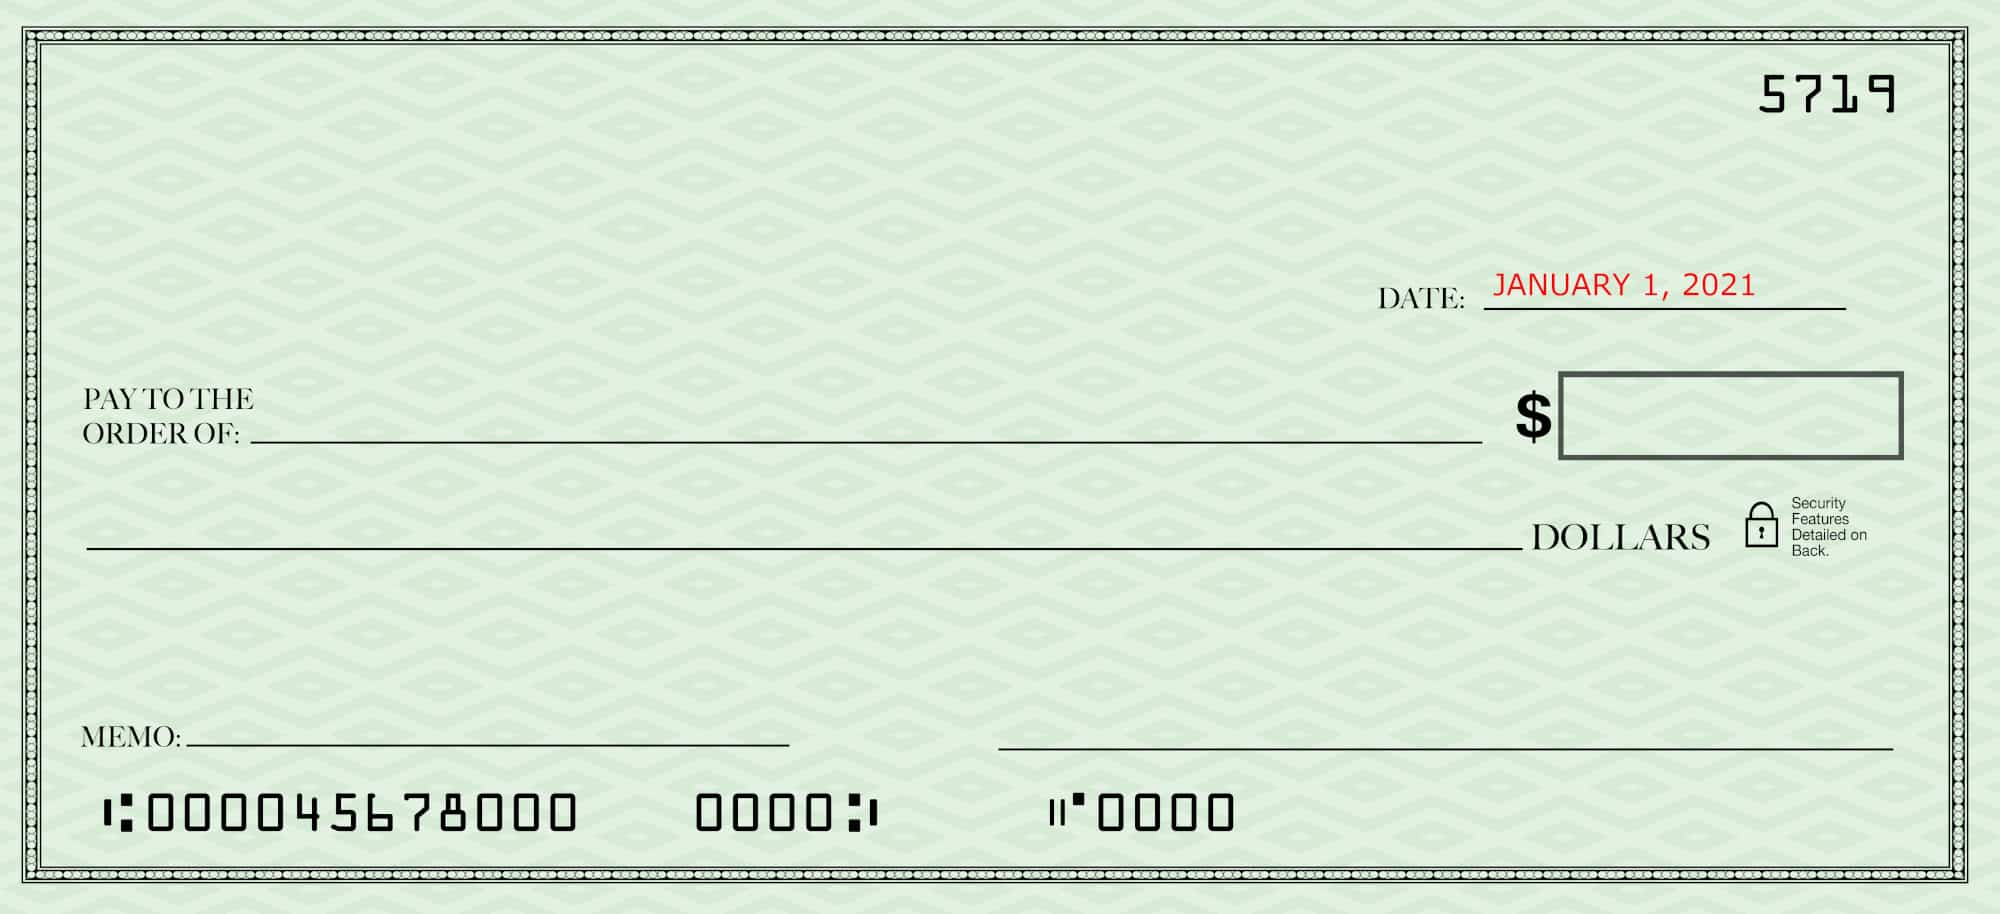 Filling out a check--blank check with just the date filled in